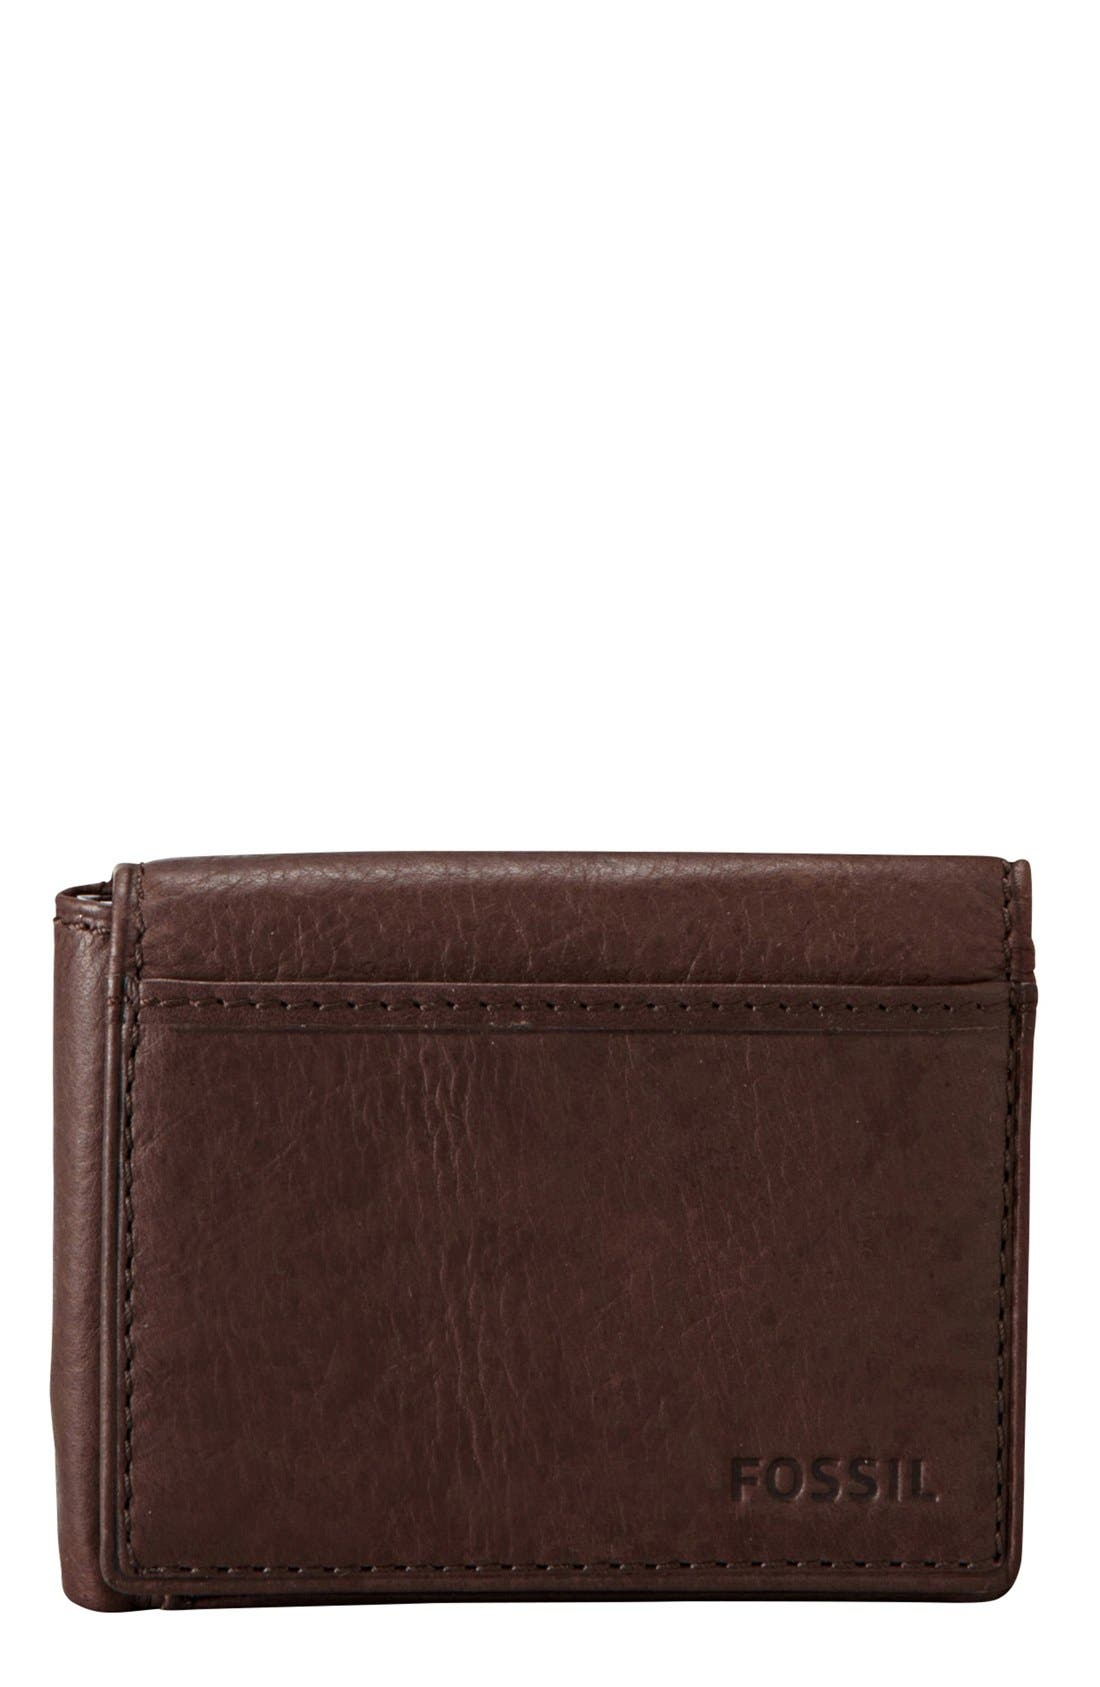 Main Image - Fossil 'Ingram' Leather Flip Trifold Wallet